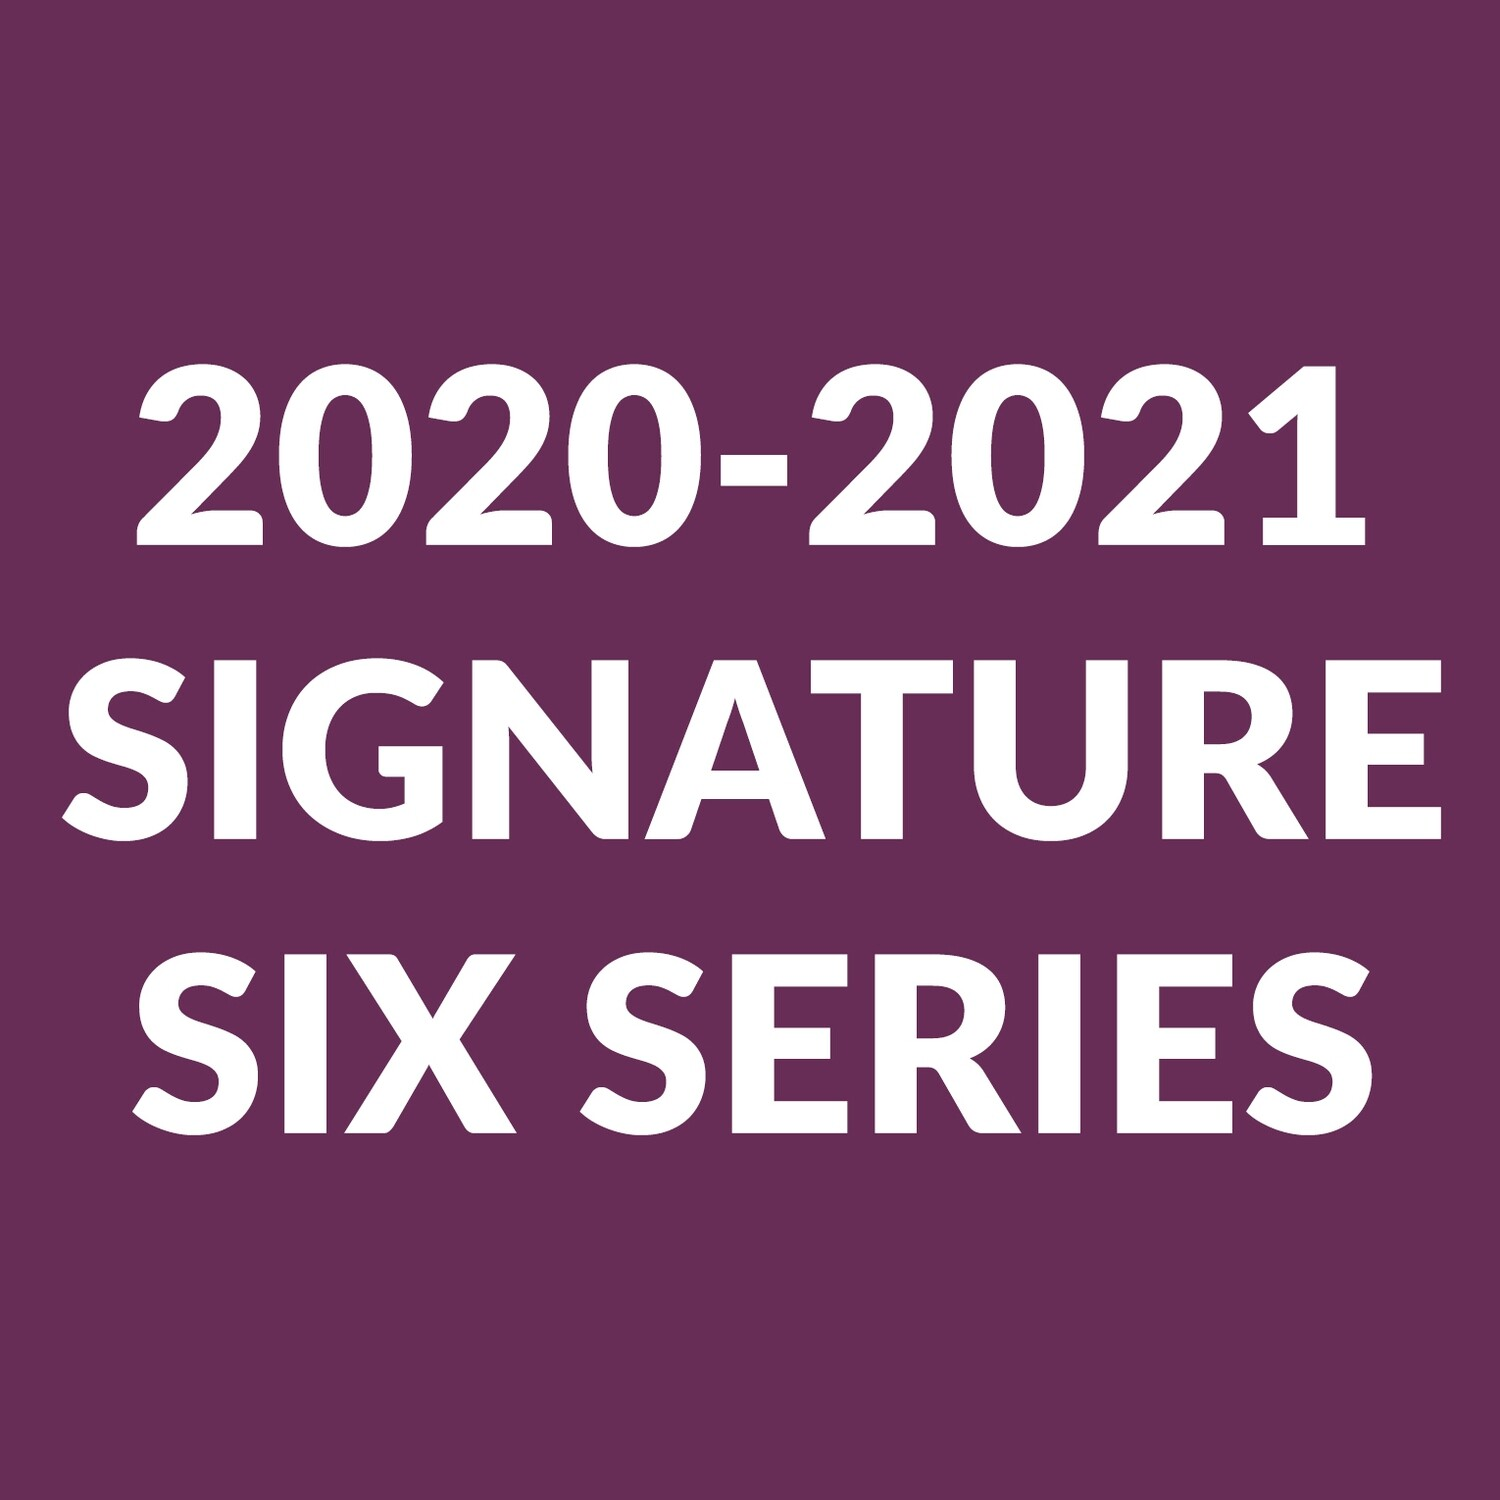 Signature Series for New Subscribers